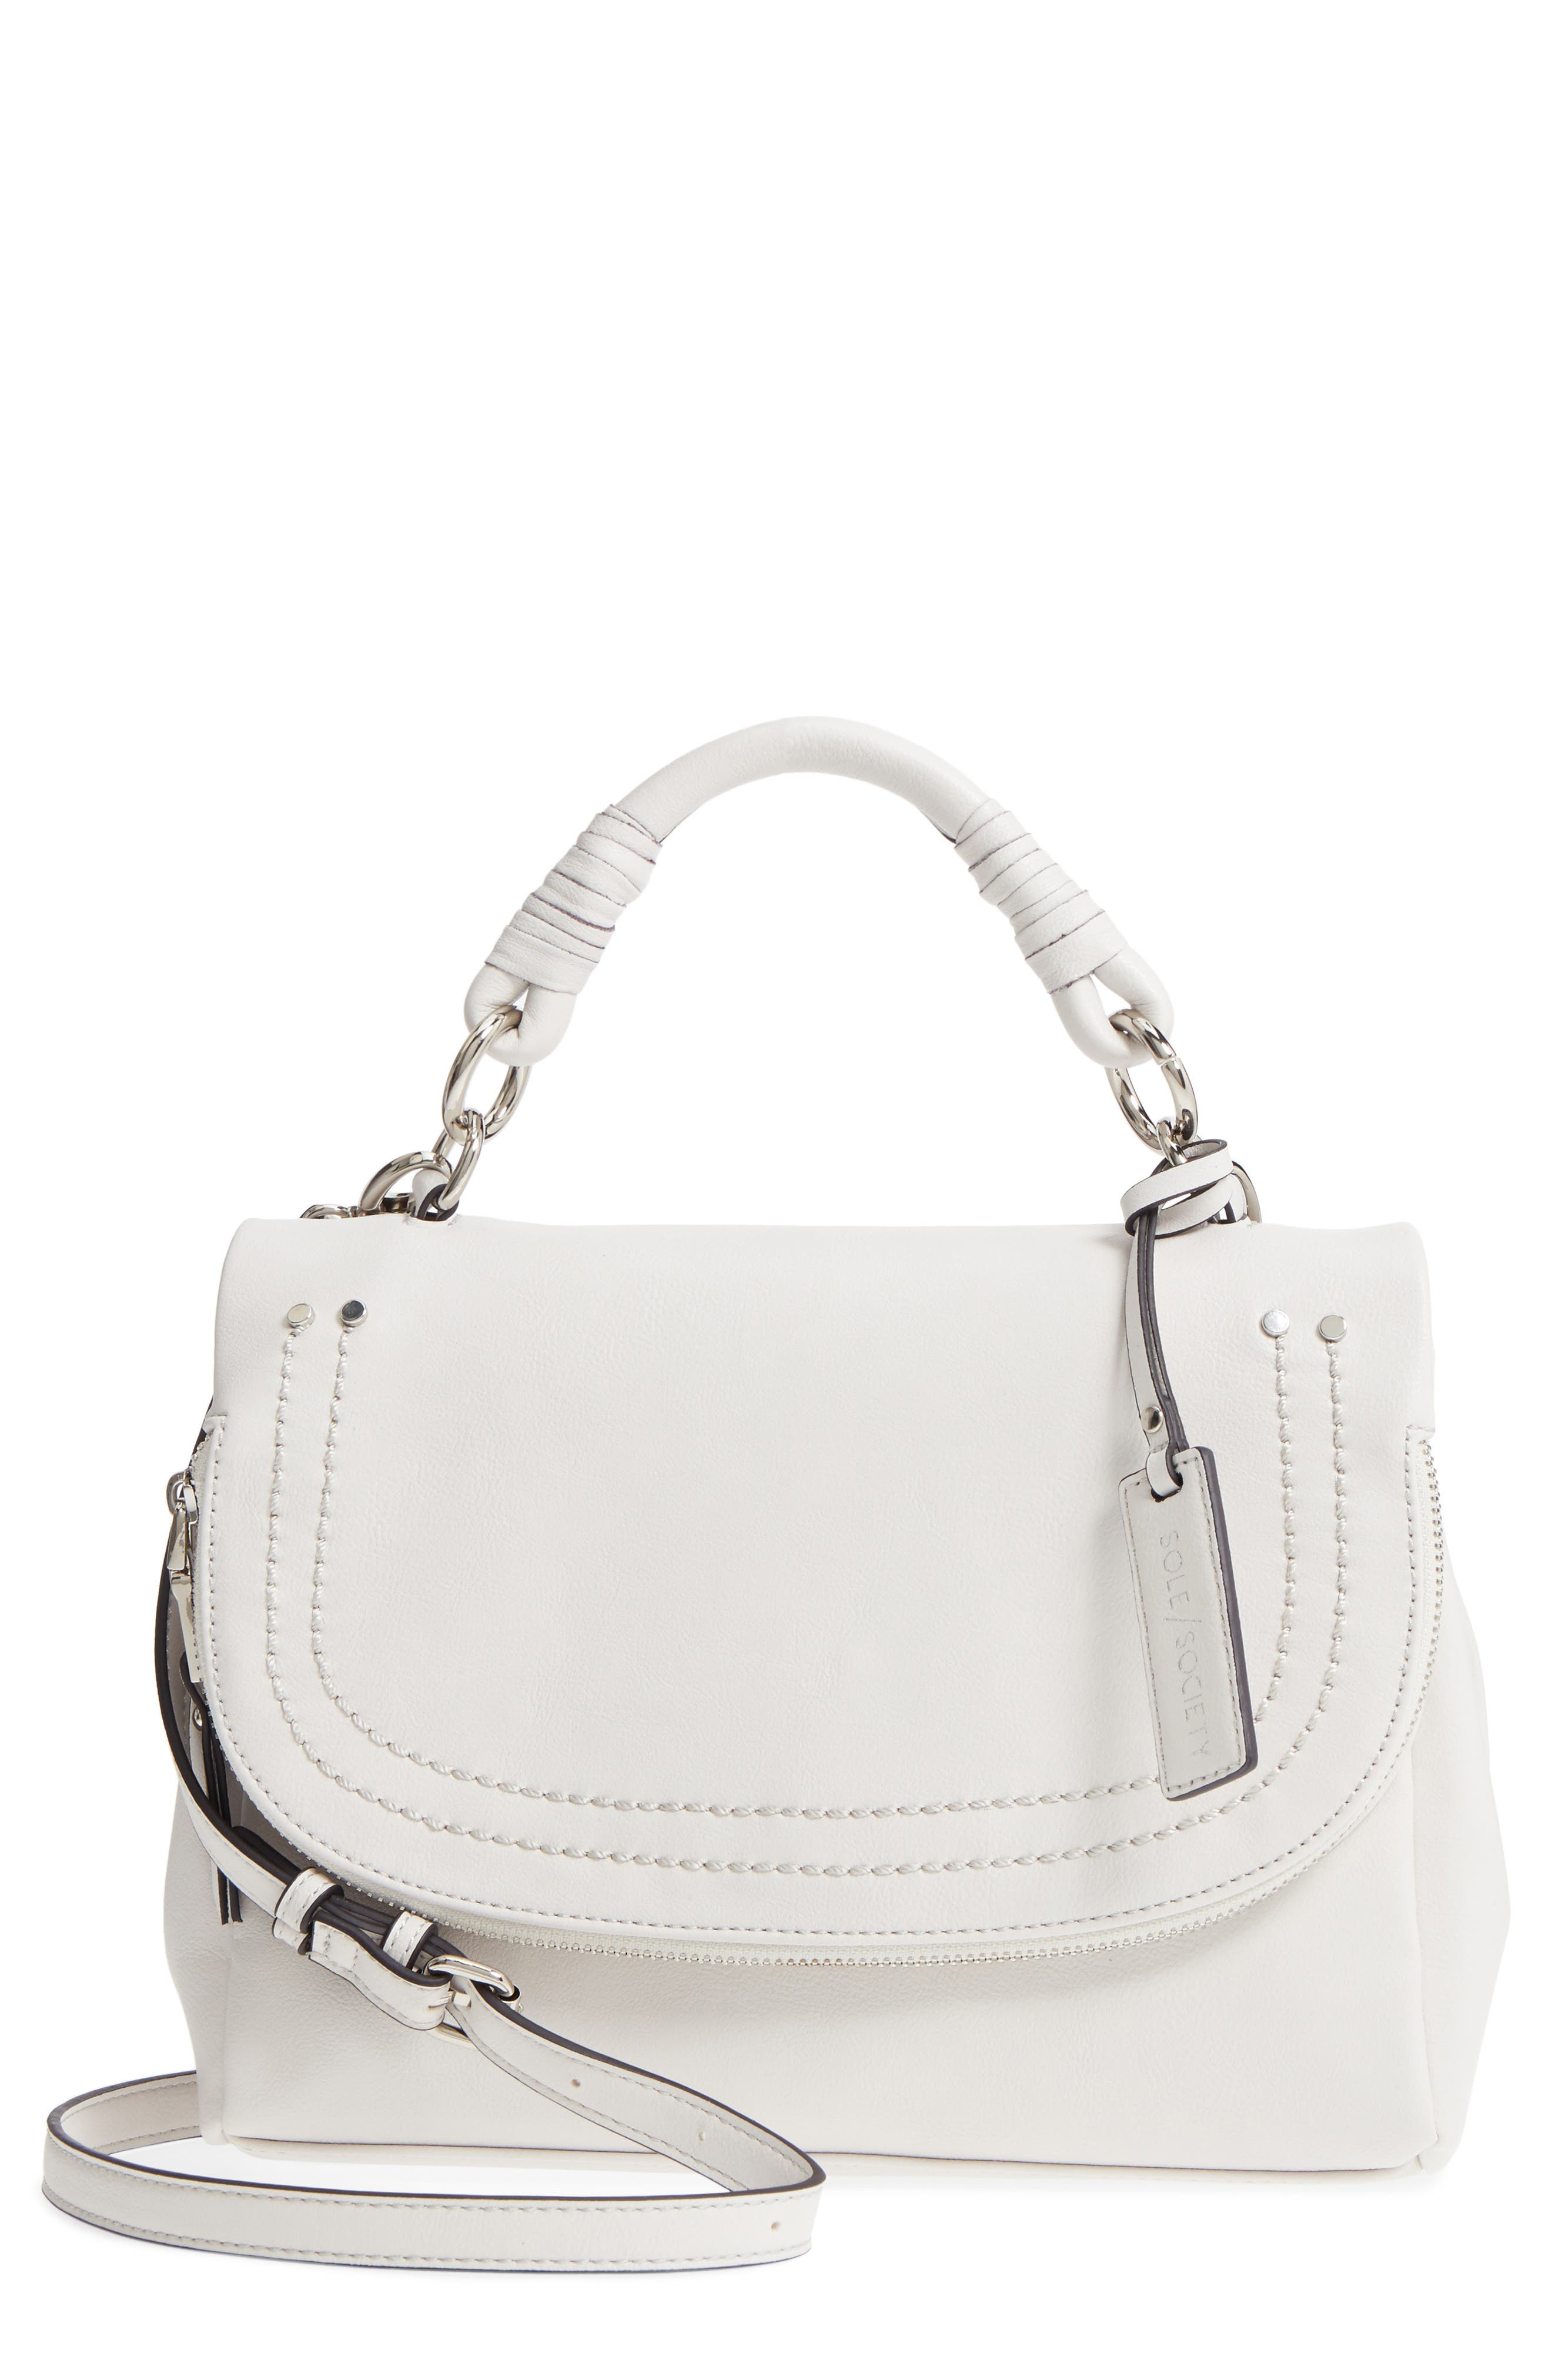 Top Handle Faux Leather Crossbody Bag,                         Main,                         color, Linen White